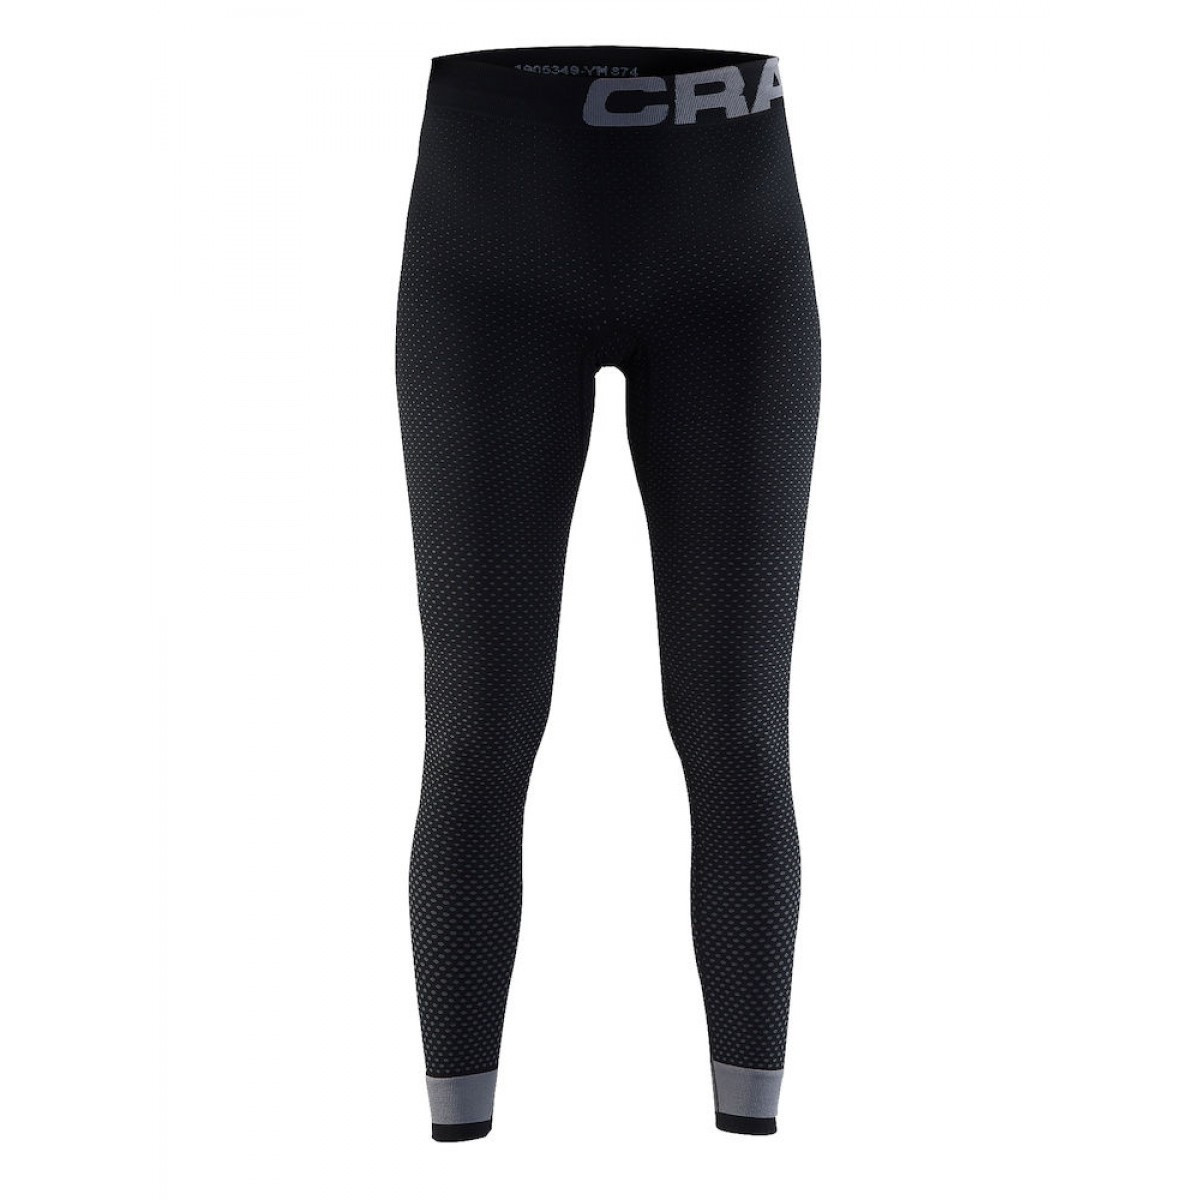 Craft Women's Warm Intensity Base Layer Pant - 2019 price